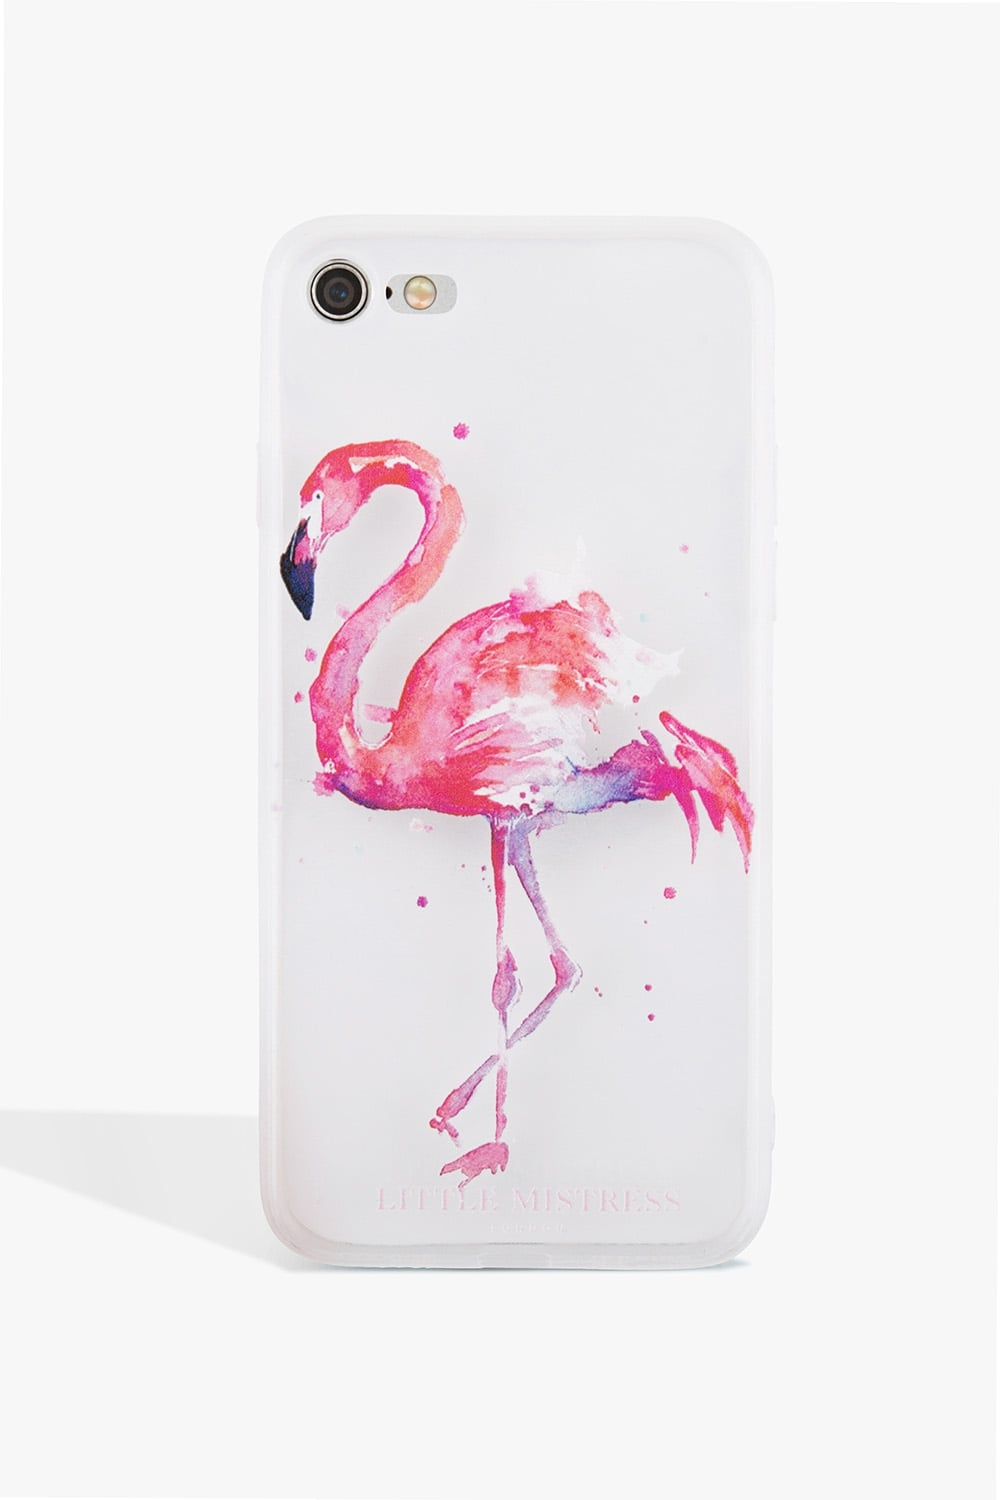 Cute Animals Transparent Soft Silicone Cases for iPhone 5